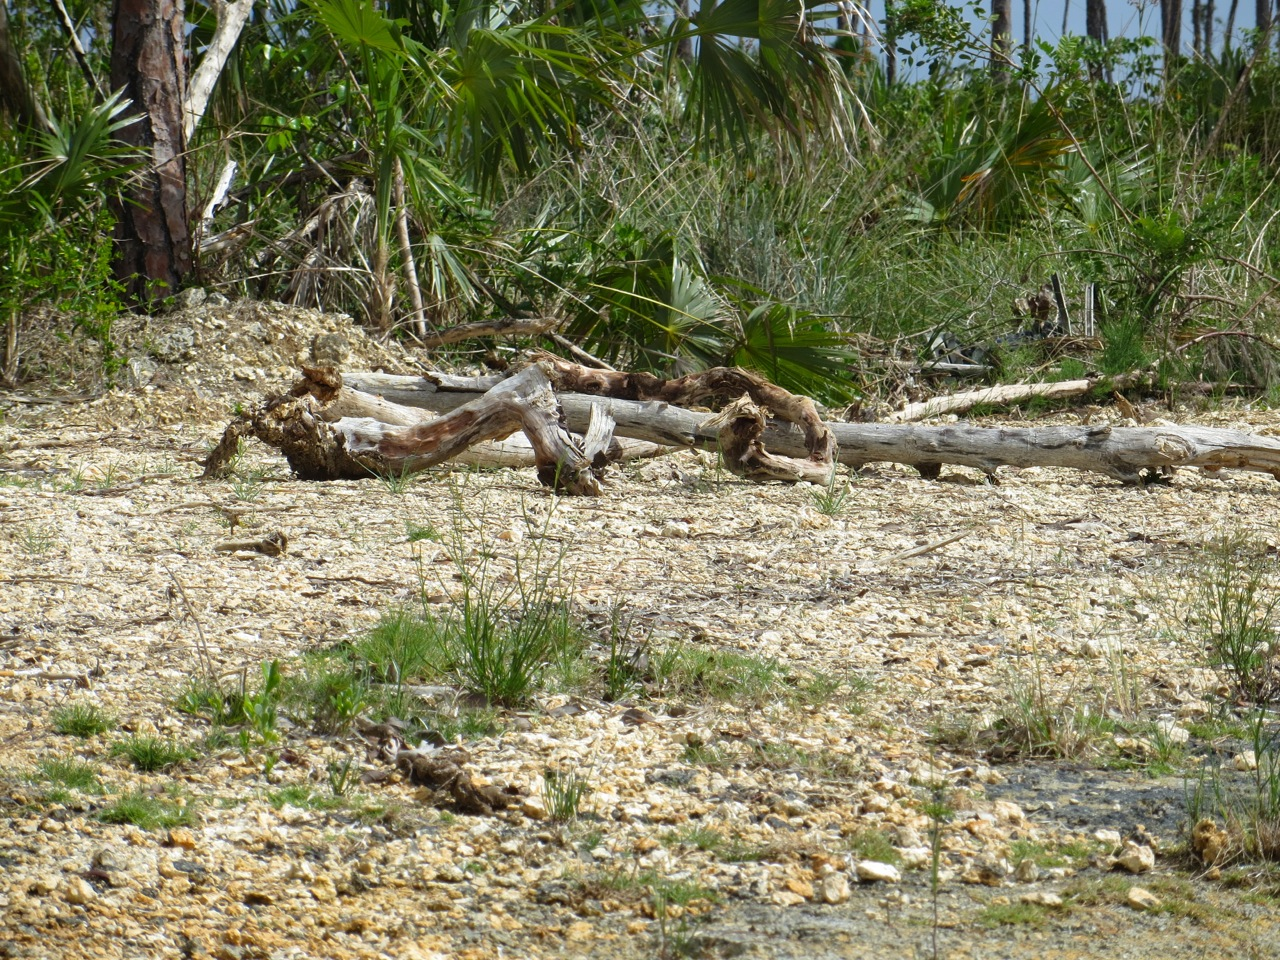 Nettie's Point, Abaco - Plover's nest protection